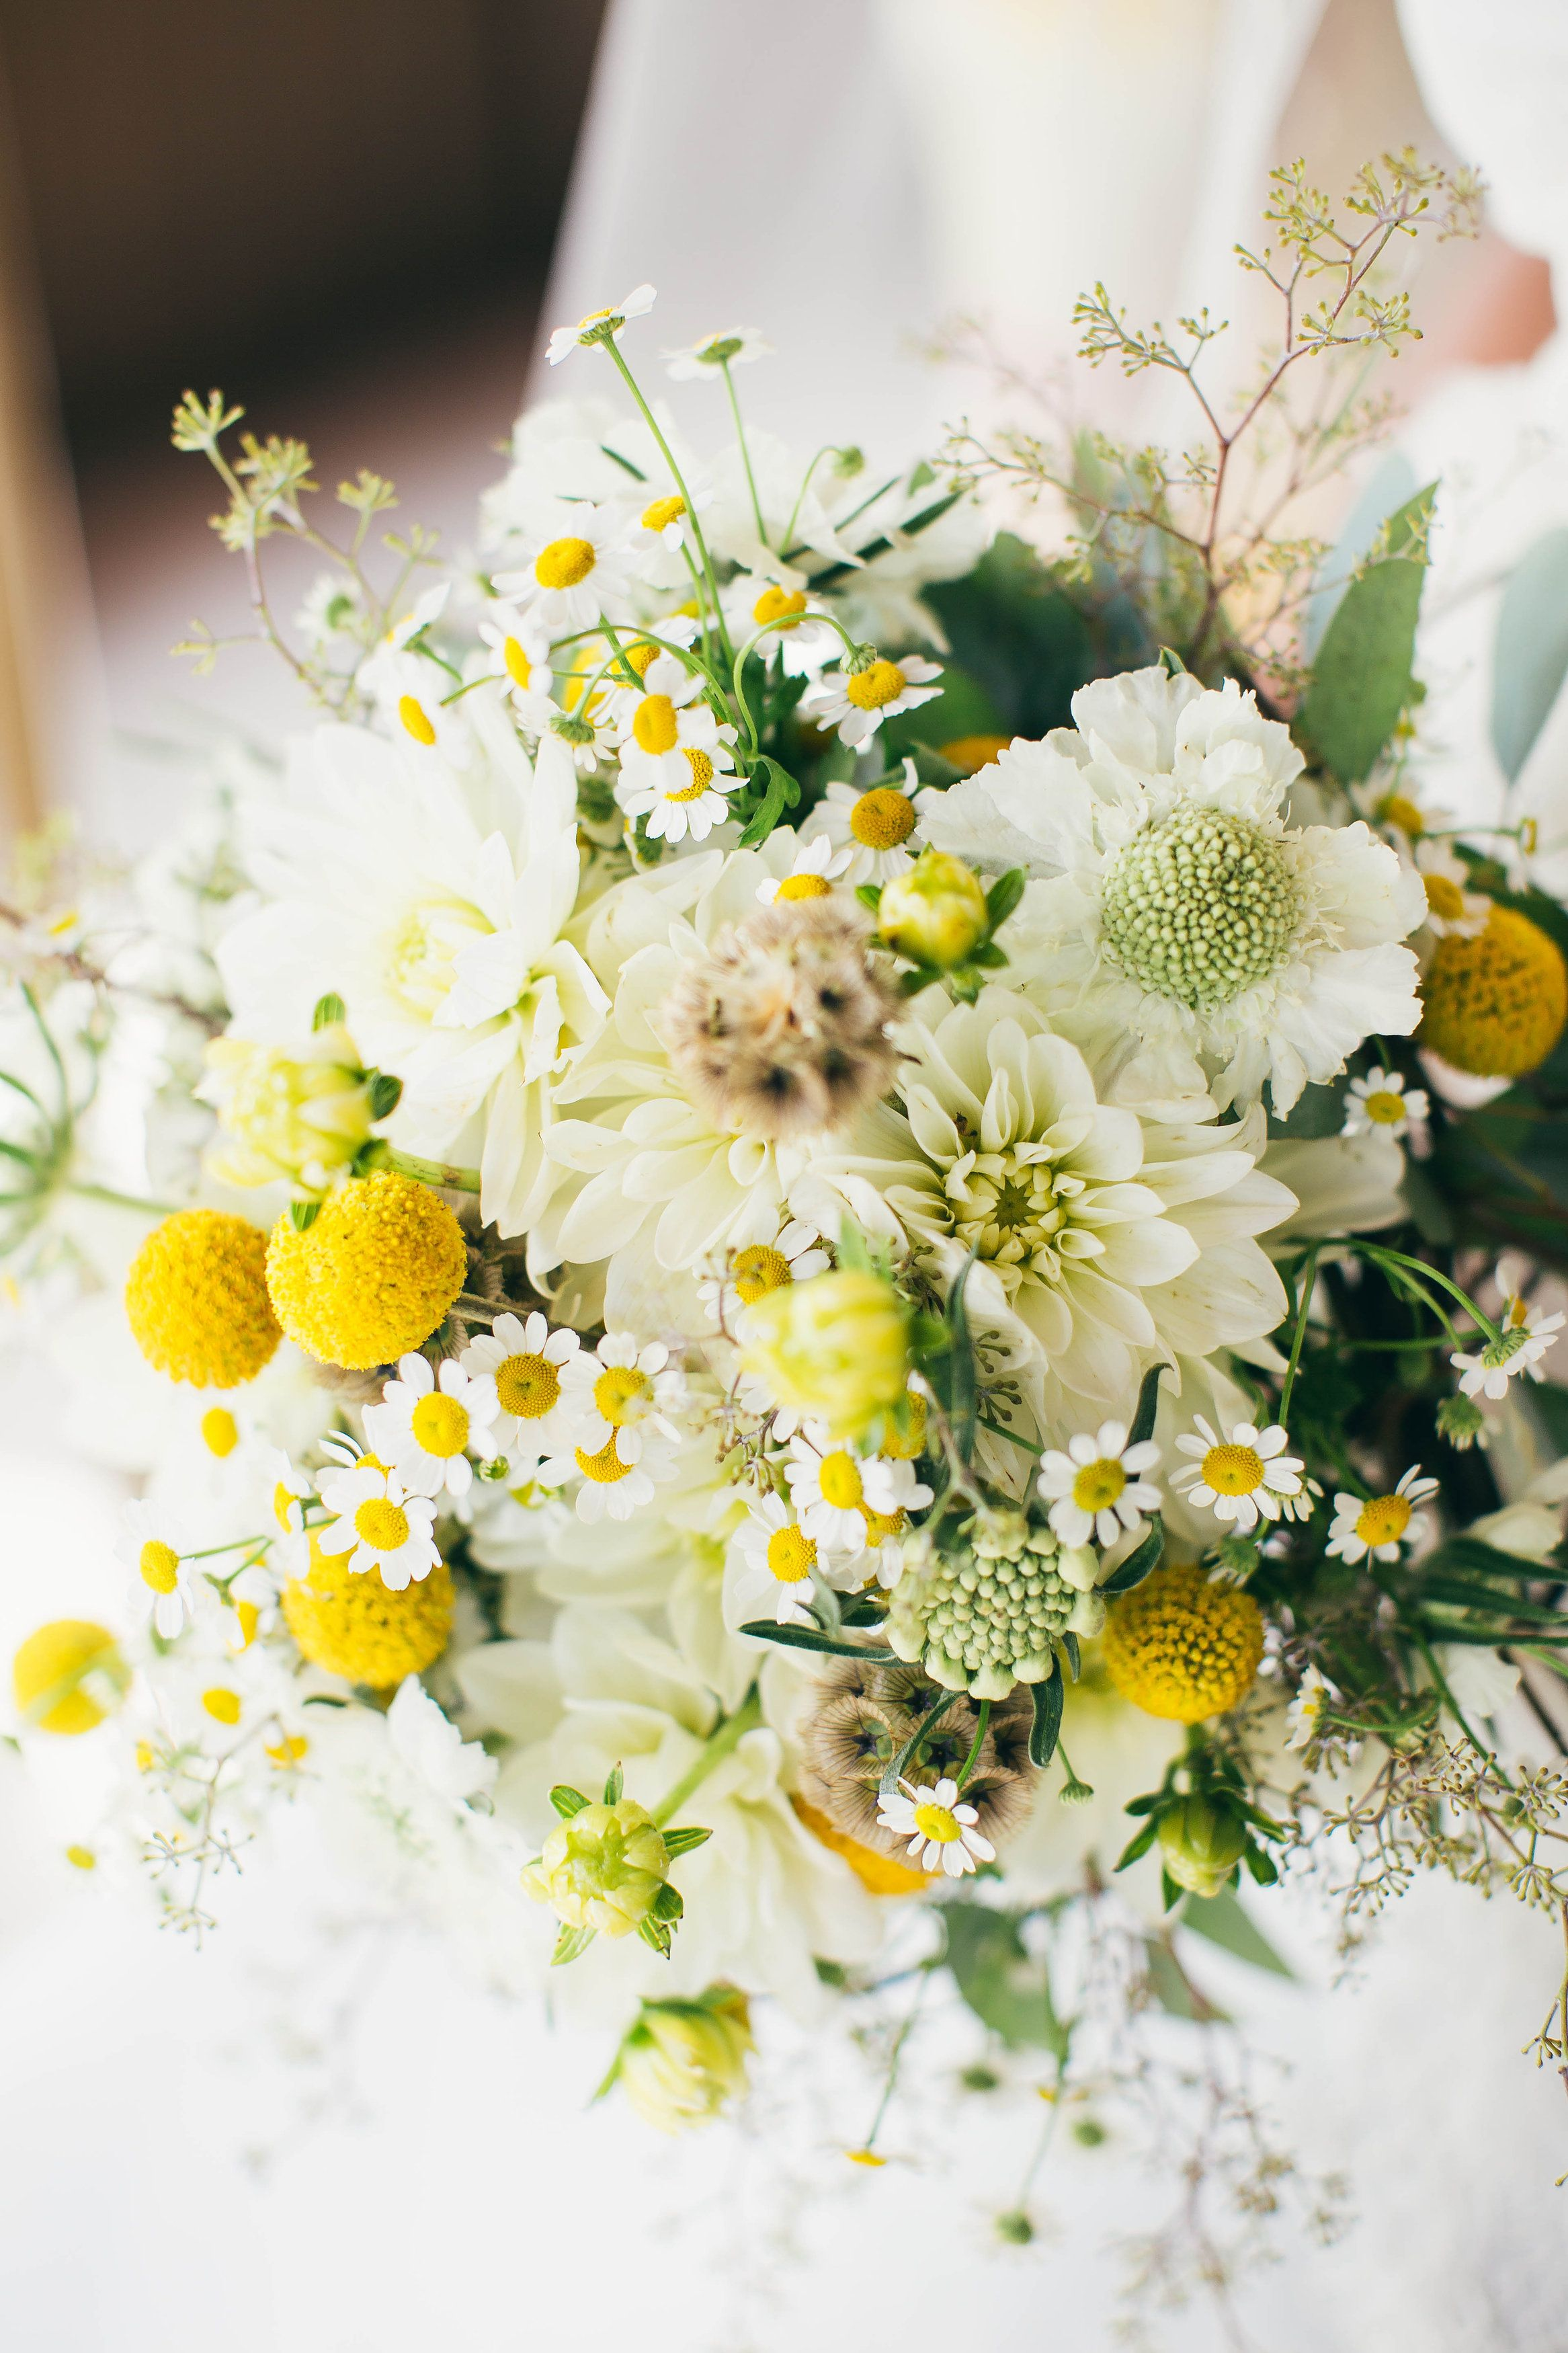 Hochzeitsstrauß Meghan Markle Yellow And White Bouquet With Craspedia Scabiosa And